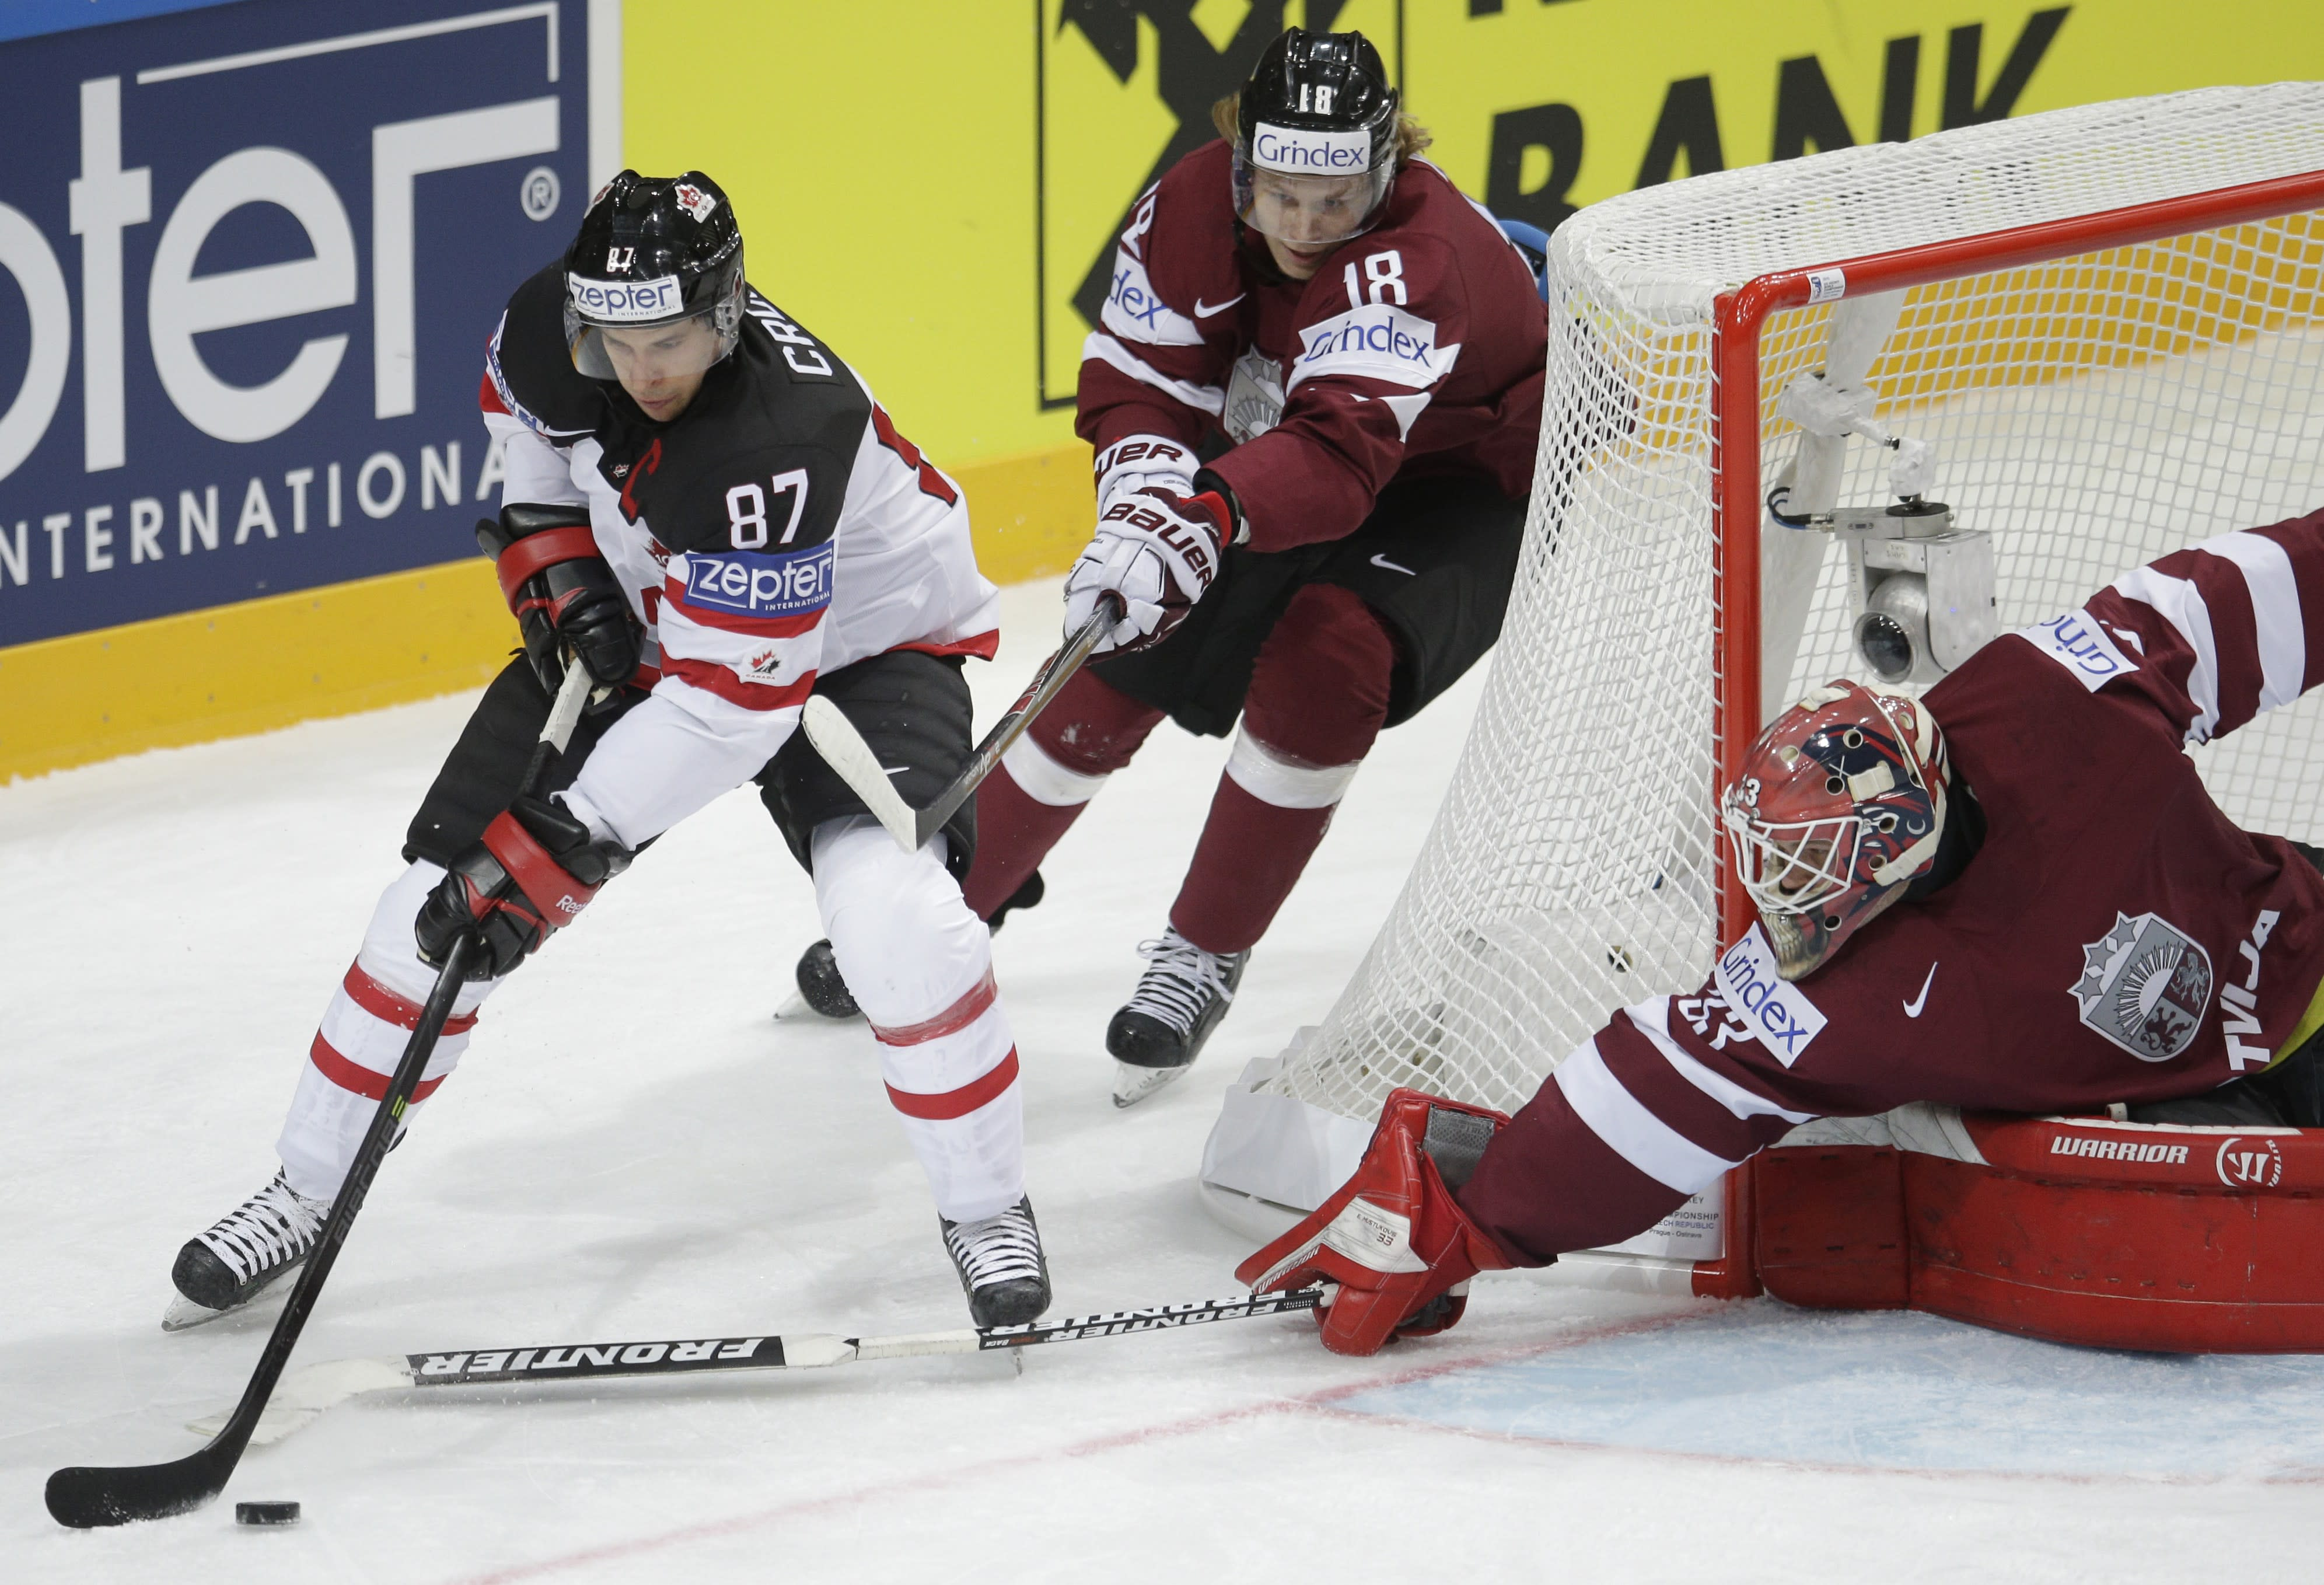 Canada opens hockey worlds with 6-1 win over Latvia